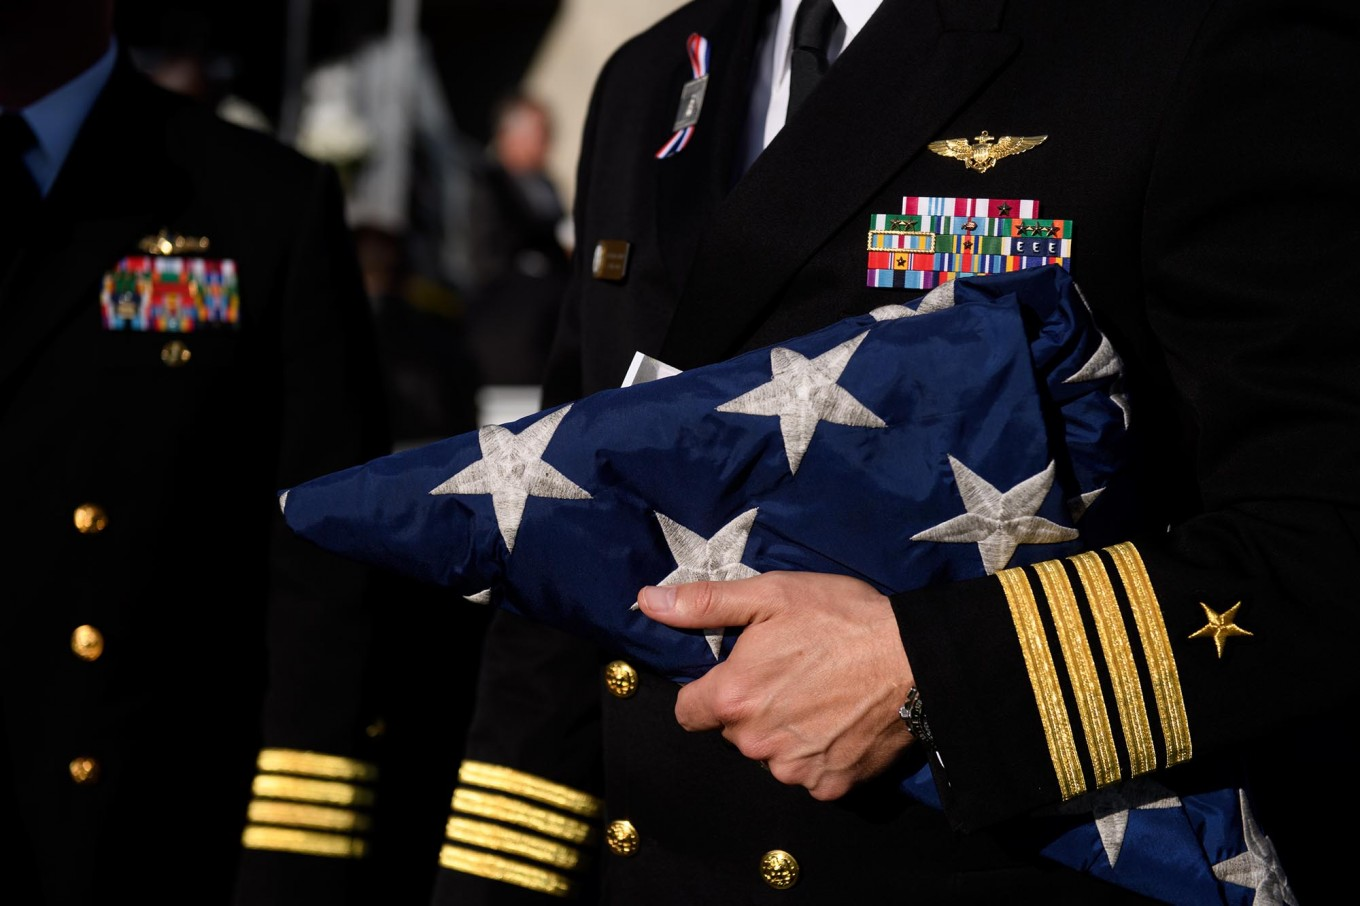 Navy Captain William Sherrod holds a flag from the USS Somerset to present to family members of the the victims at the Flight 93 National Memorial on the 16th Anniversary ceremony of the September 11th terrorist attacks, September 11, 2017 in Shanksville, Pennsylvania. United Airlines Flight 93 crashed into a field outside Shanksville, PA with 40 passengers and 4 hijackers aboard on September 11, 2001. AFP /Getty Images/Jeff Swensen